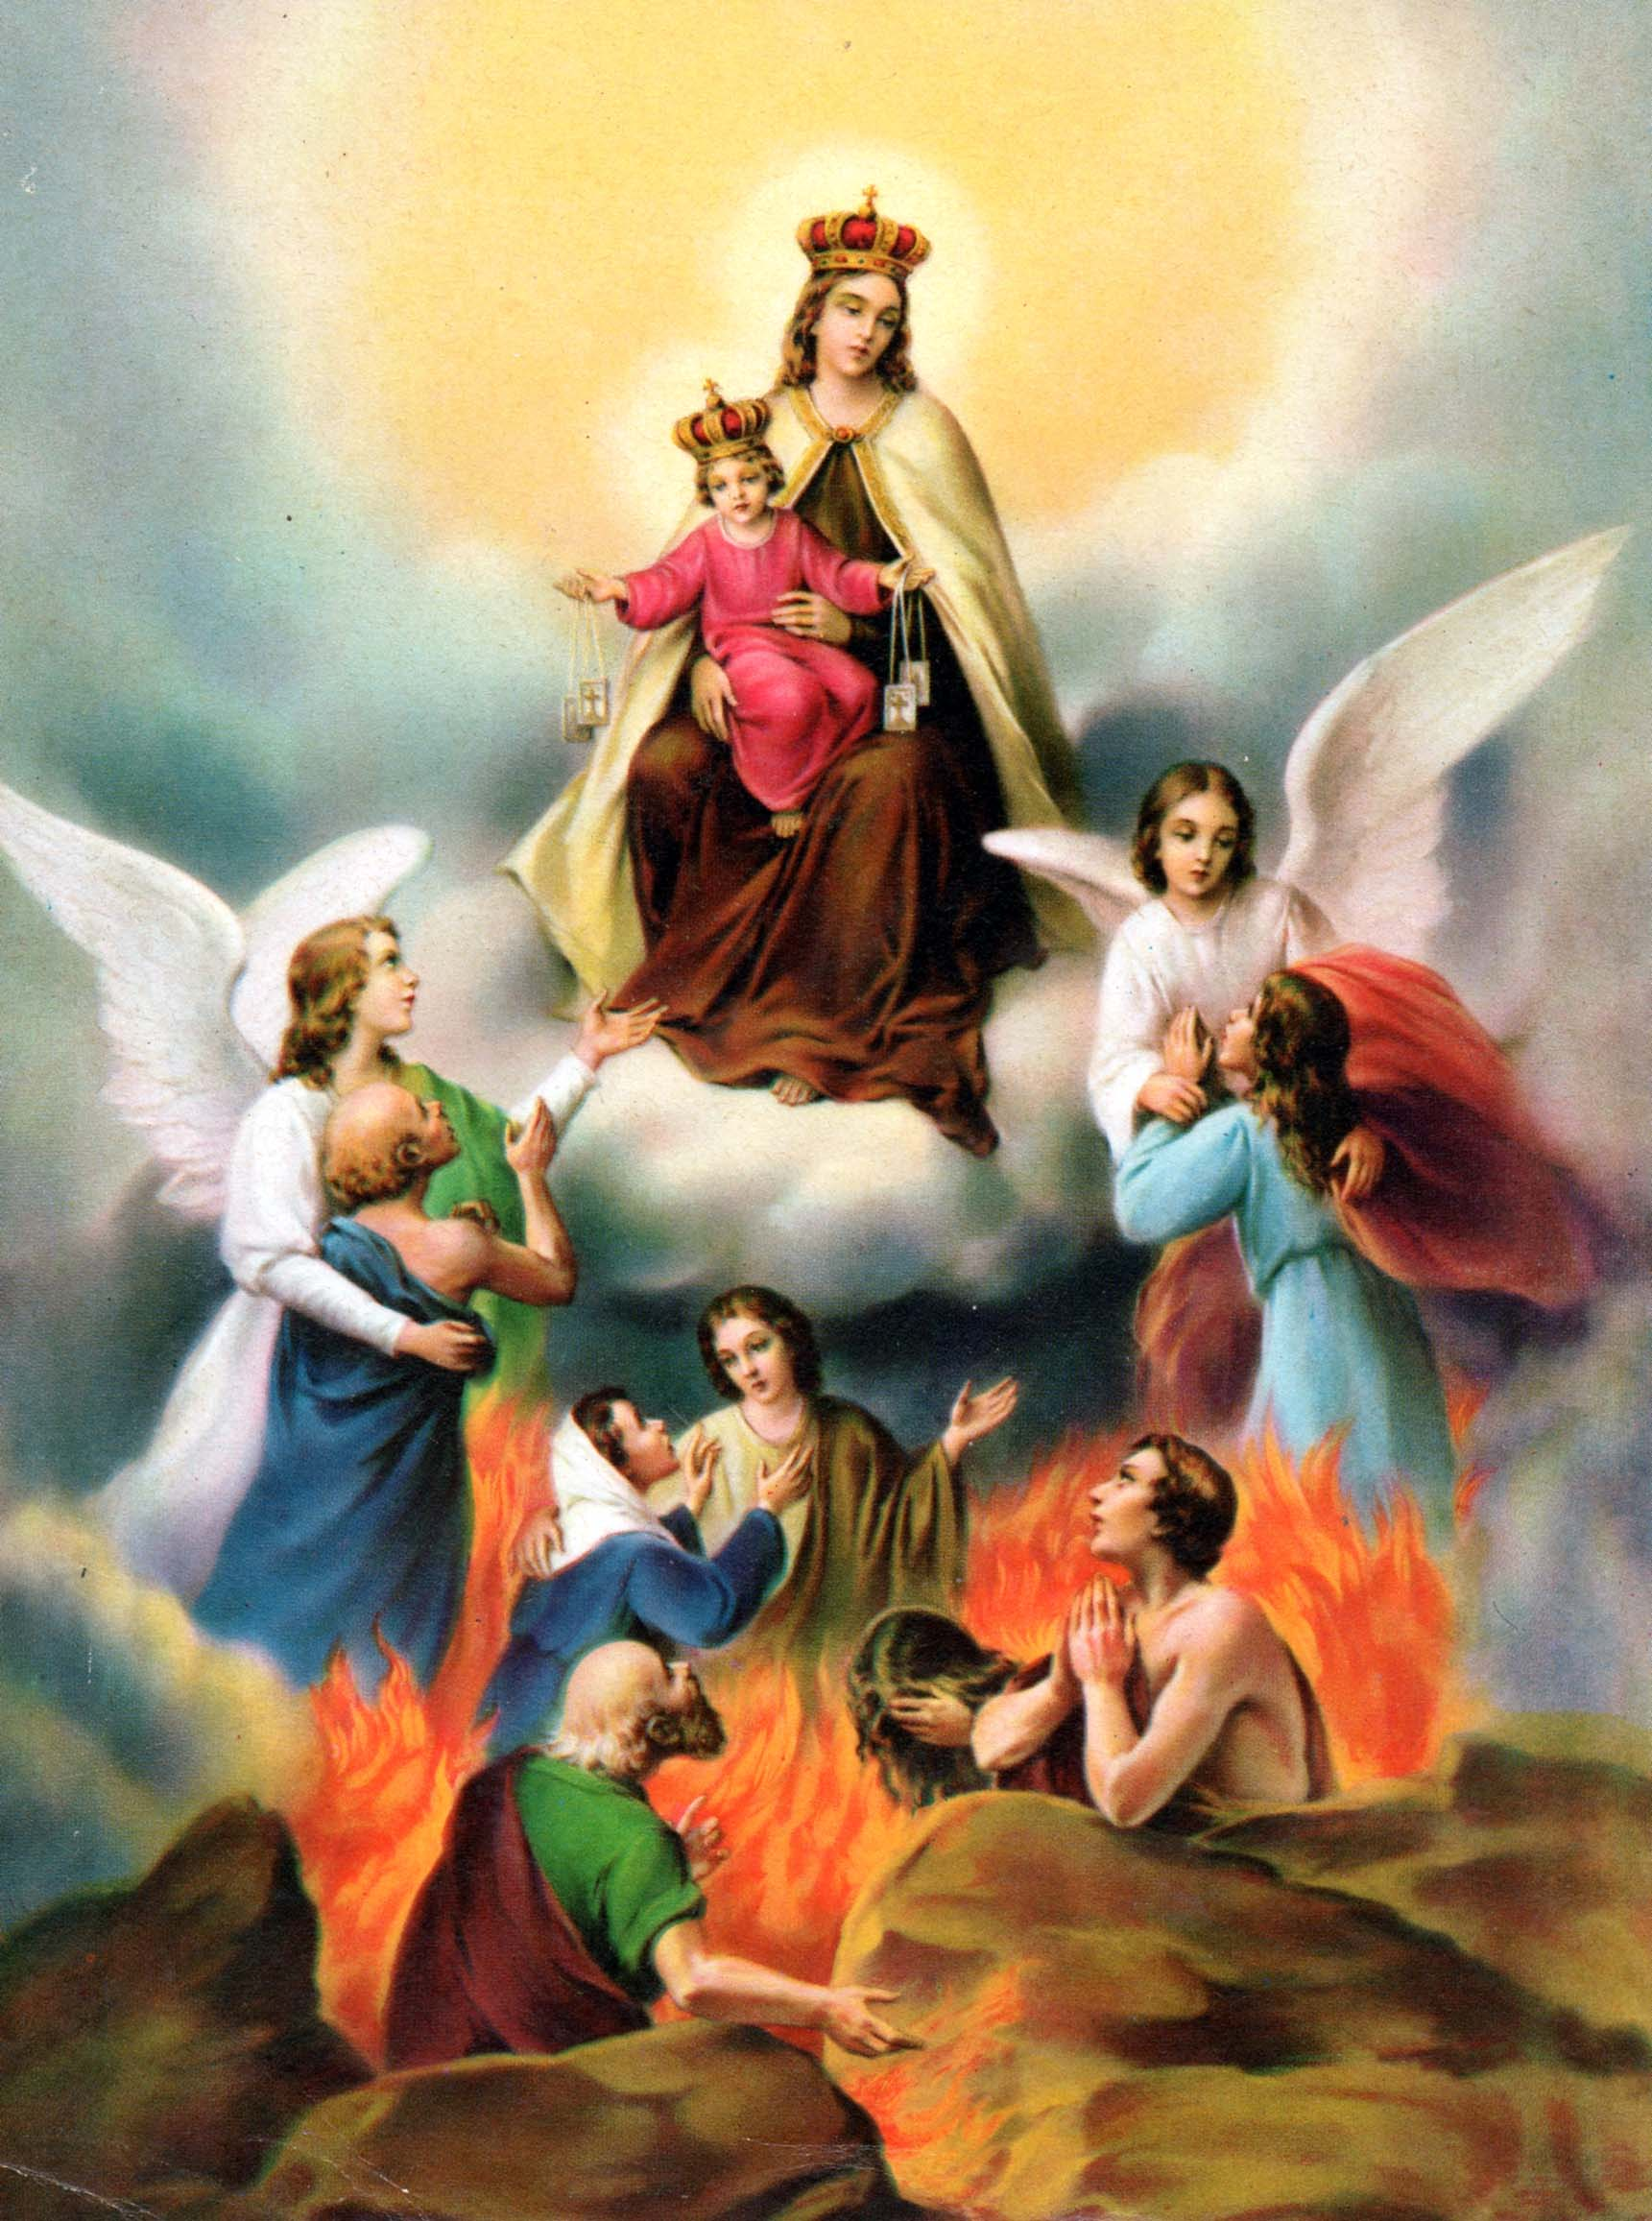 "<a href=""/wp-content/uploads/2019/08/Carta-Novena-Pedro-III-Inglés-para-la-web28528.pdf"" title=""Nineth Apostolic Letter of His Holiness Pope Peter III on the Holy Souls of Purgatory""><i>Ninth Apostolic Letter of His Holiness Pope Peter III on the Holy Souls of Purgatory</i><br><br>See more</a>"